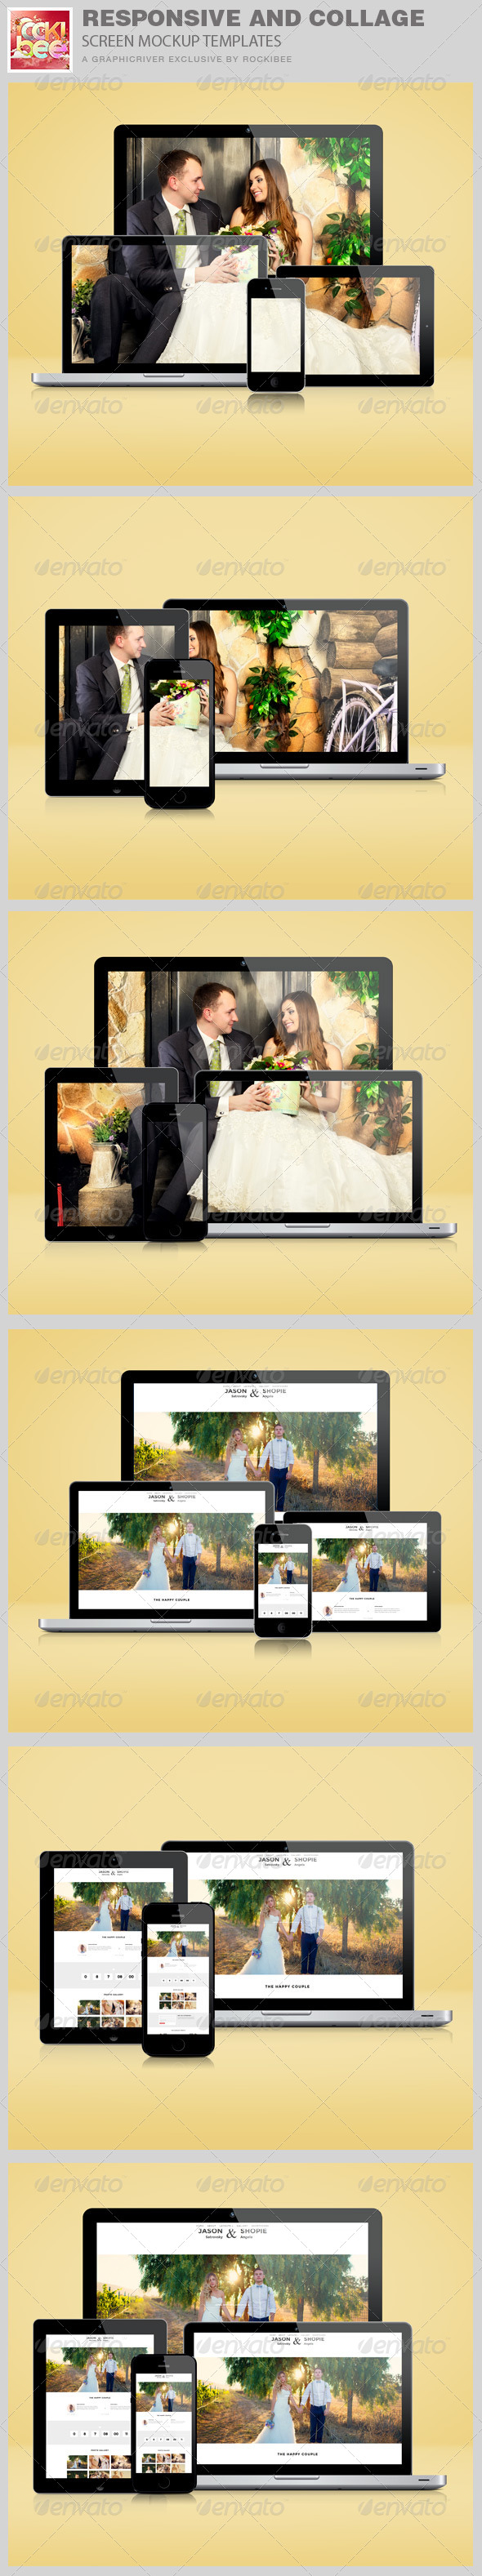 GraphicRiver Responsive and Collage Screen Mockup Templates 8569193